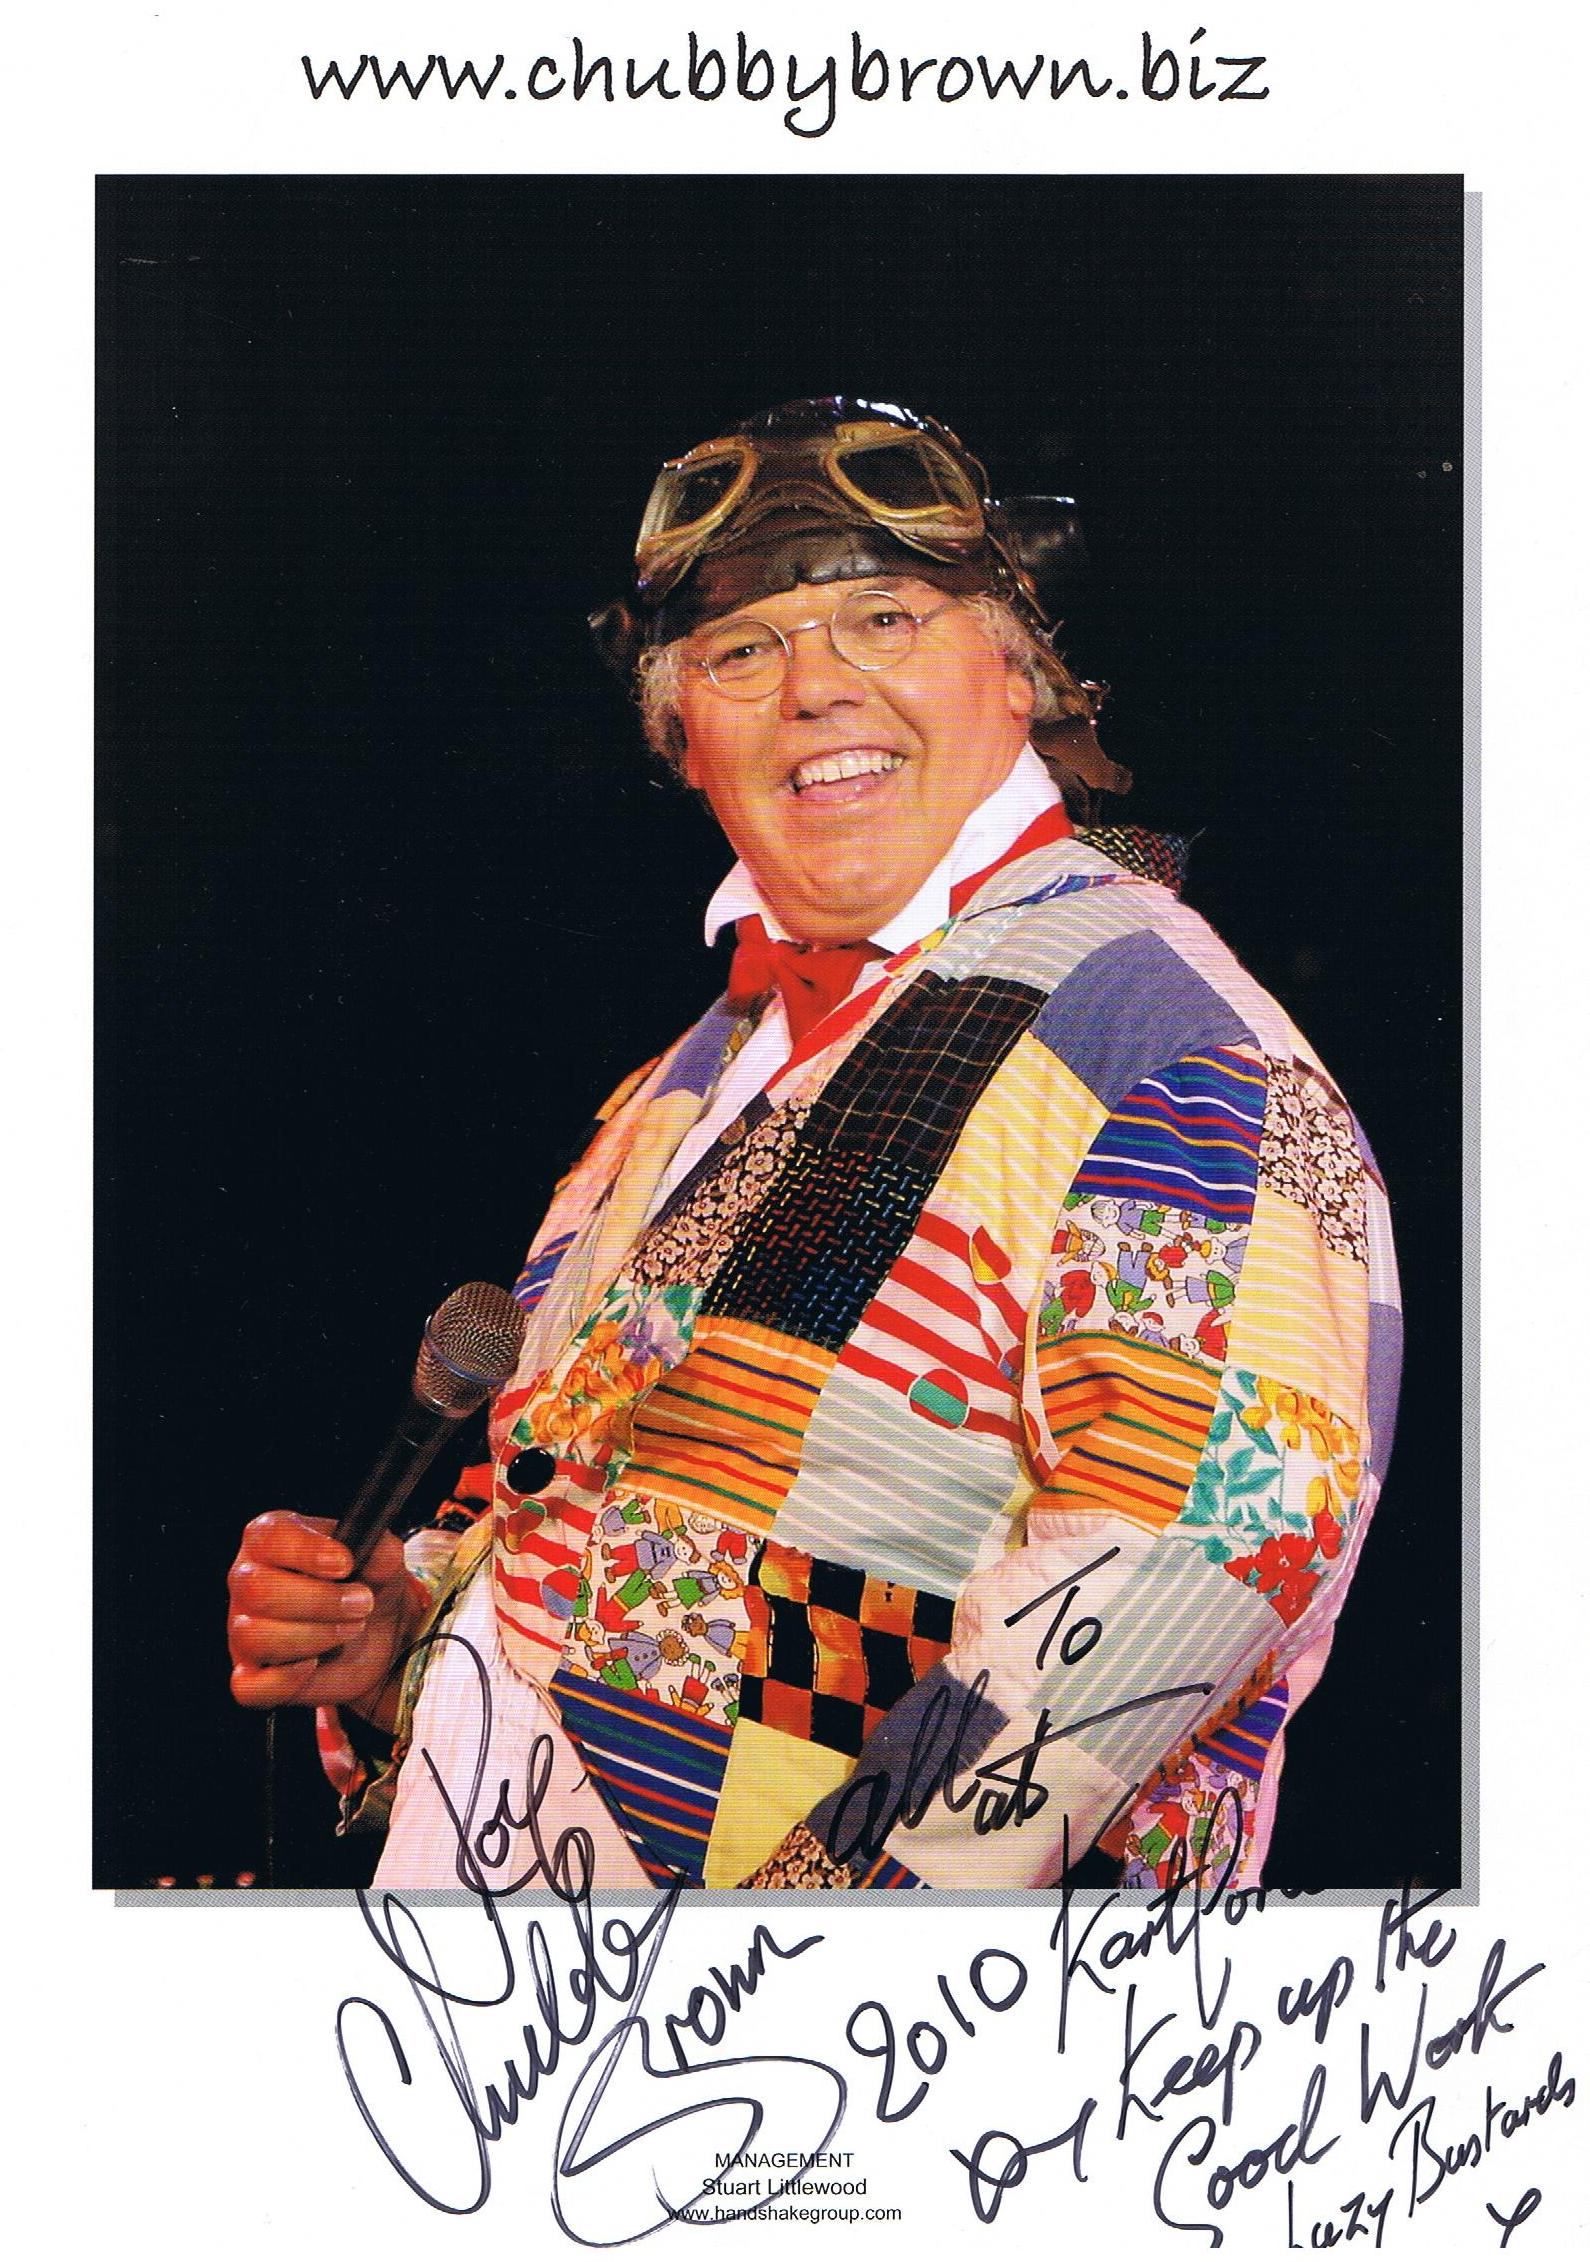 Can roy chubby brown documentary the